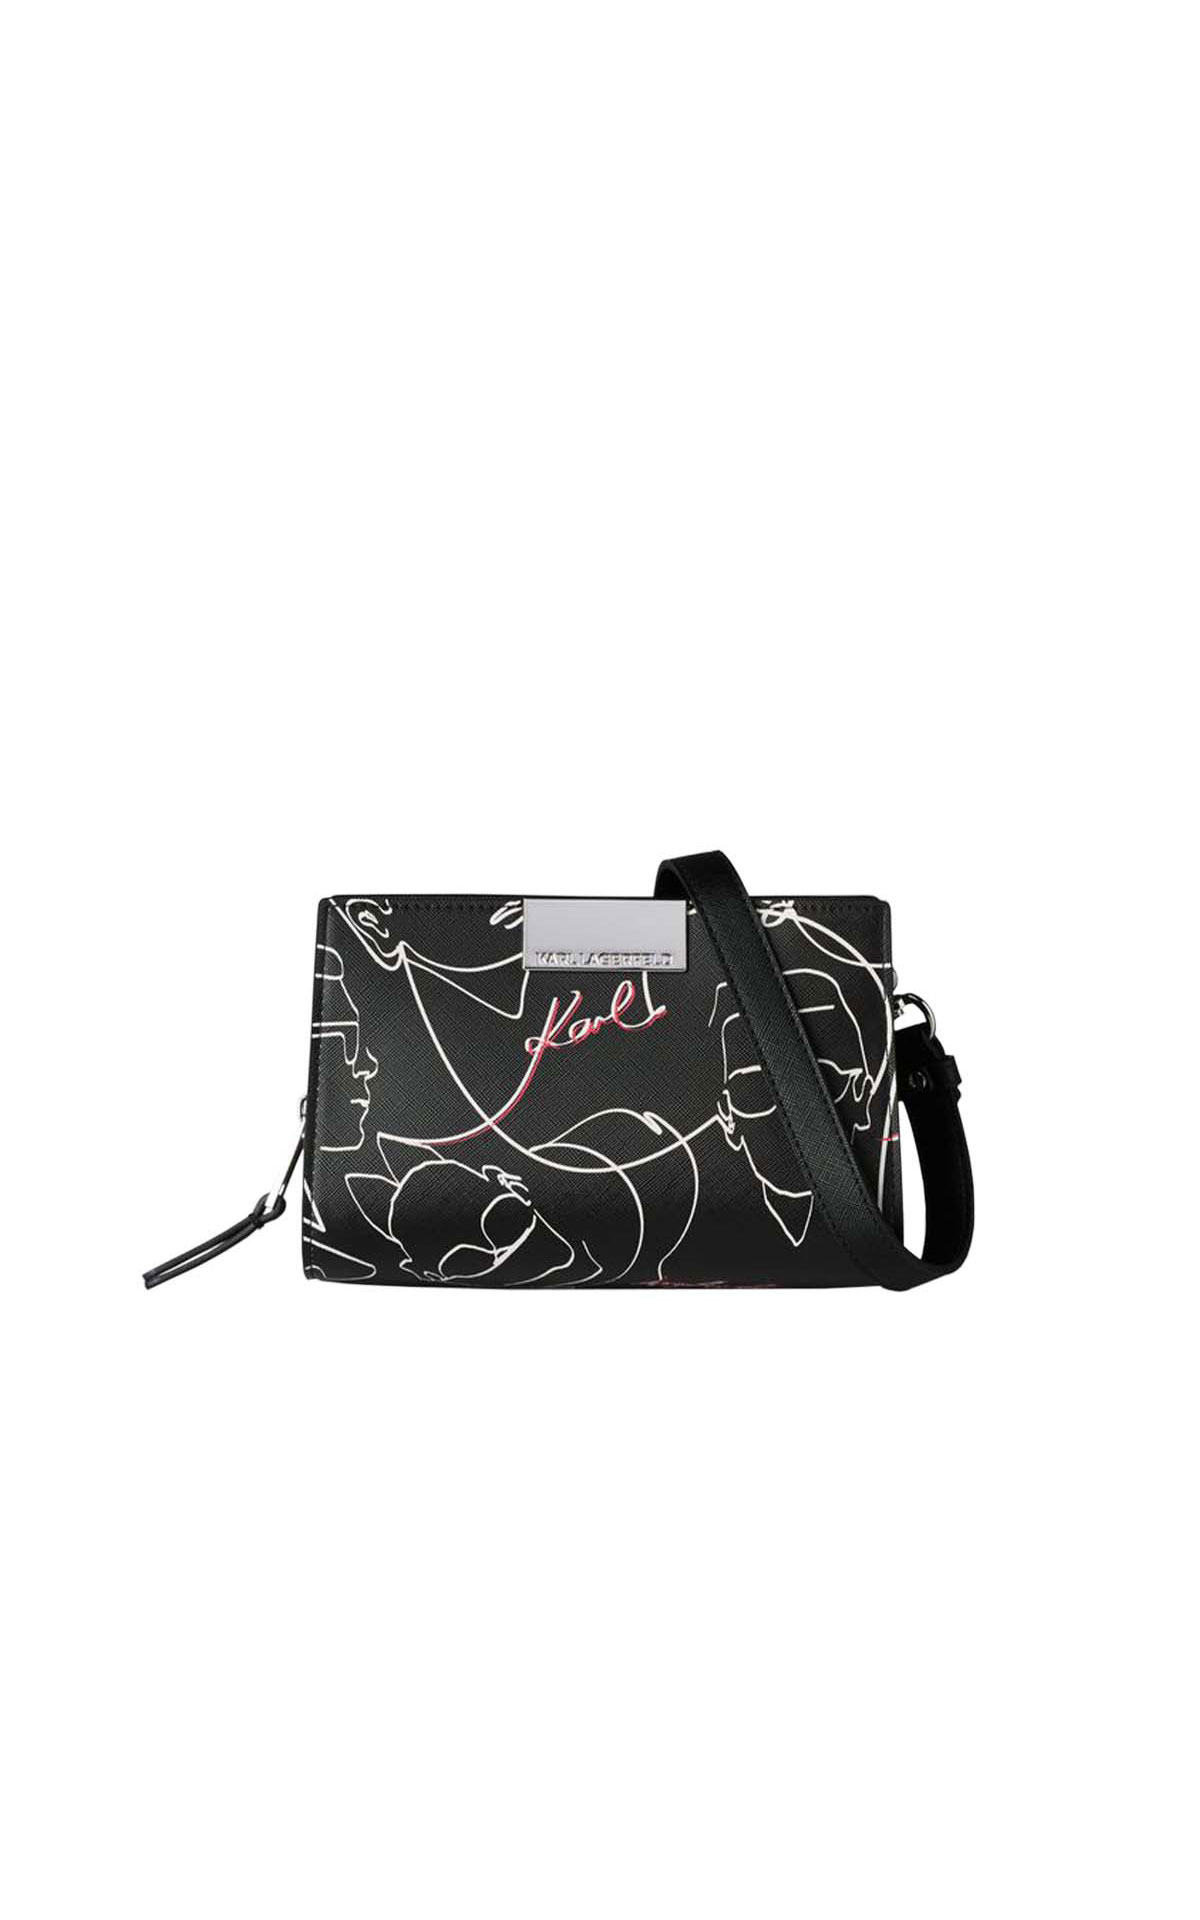 Karl Lagerfeld Mau printed crossbody at The Bicester Village Shopping Collection